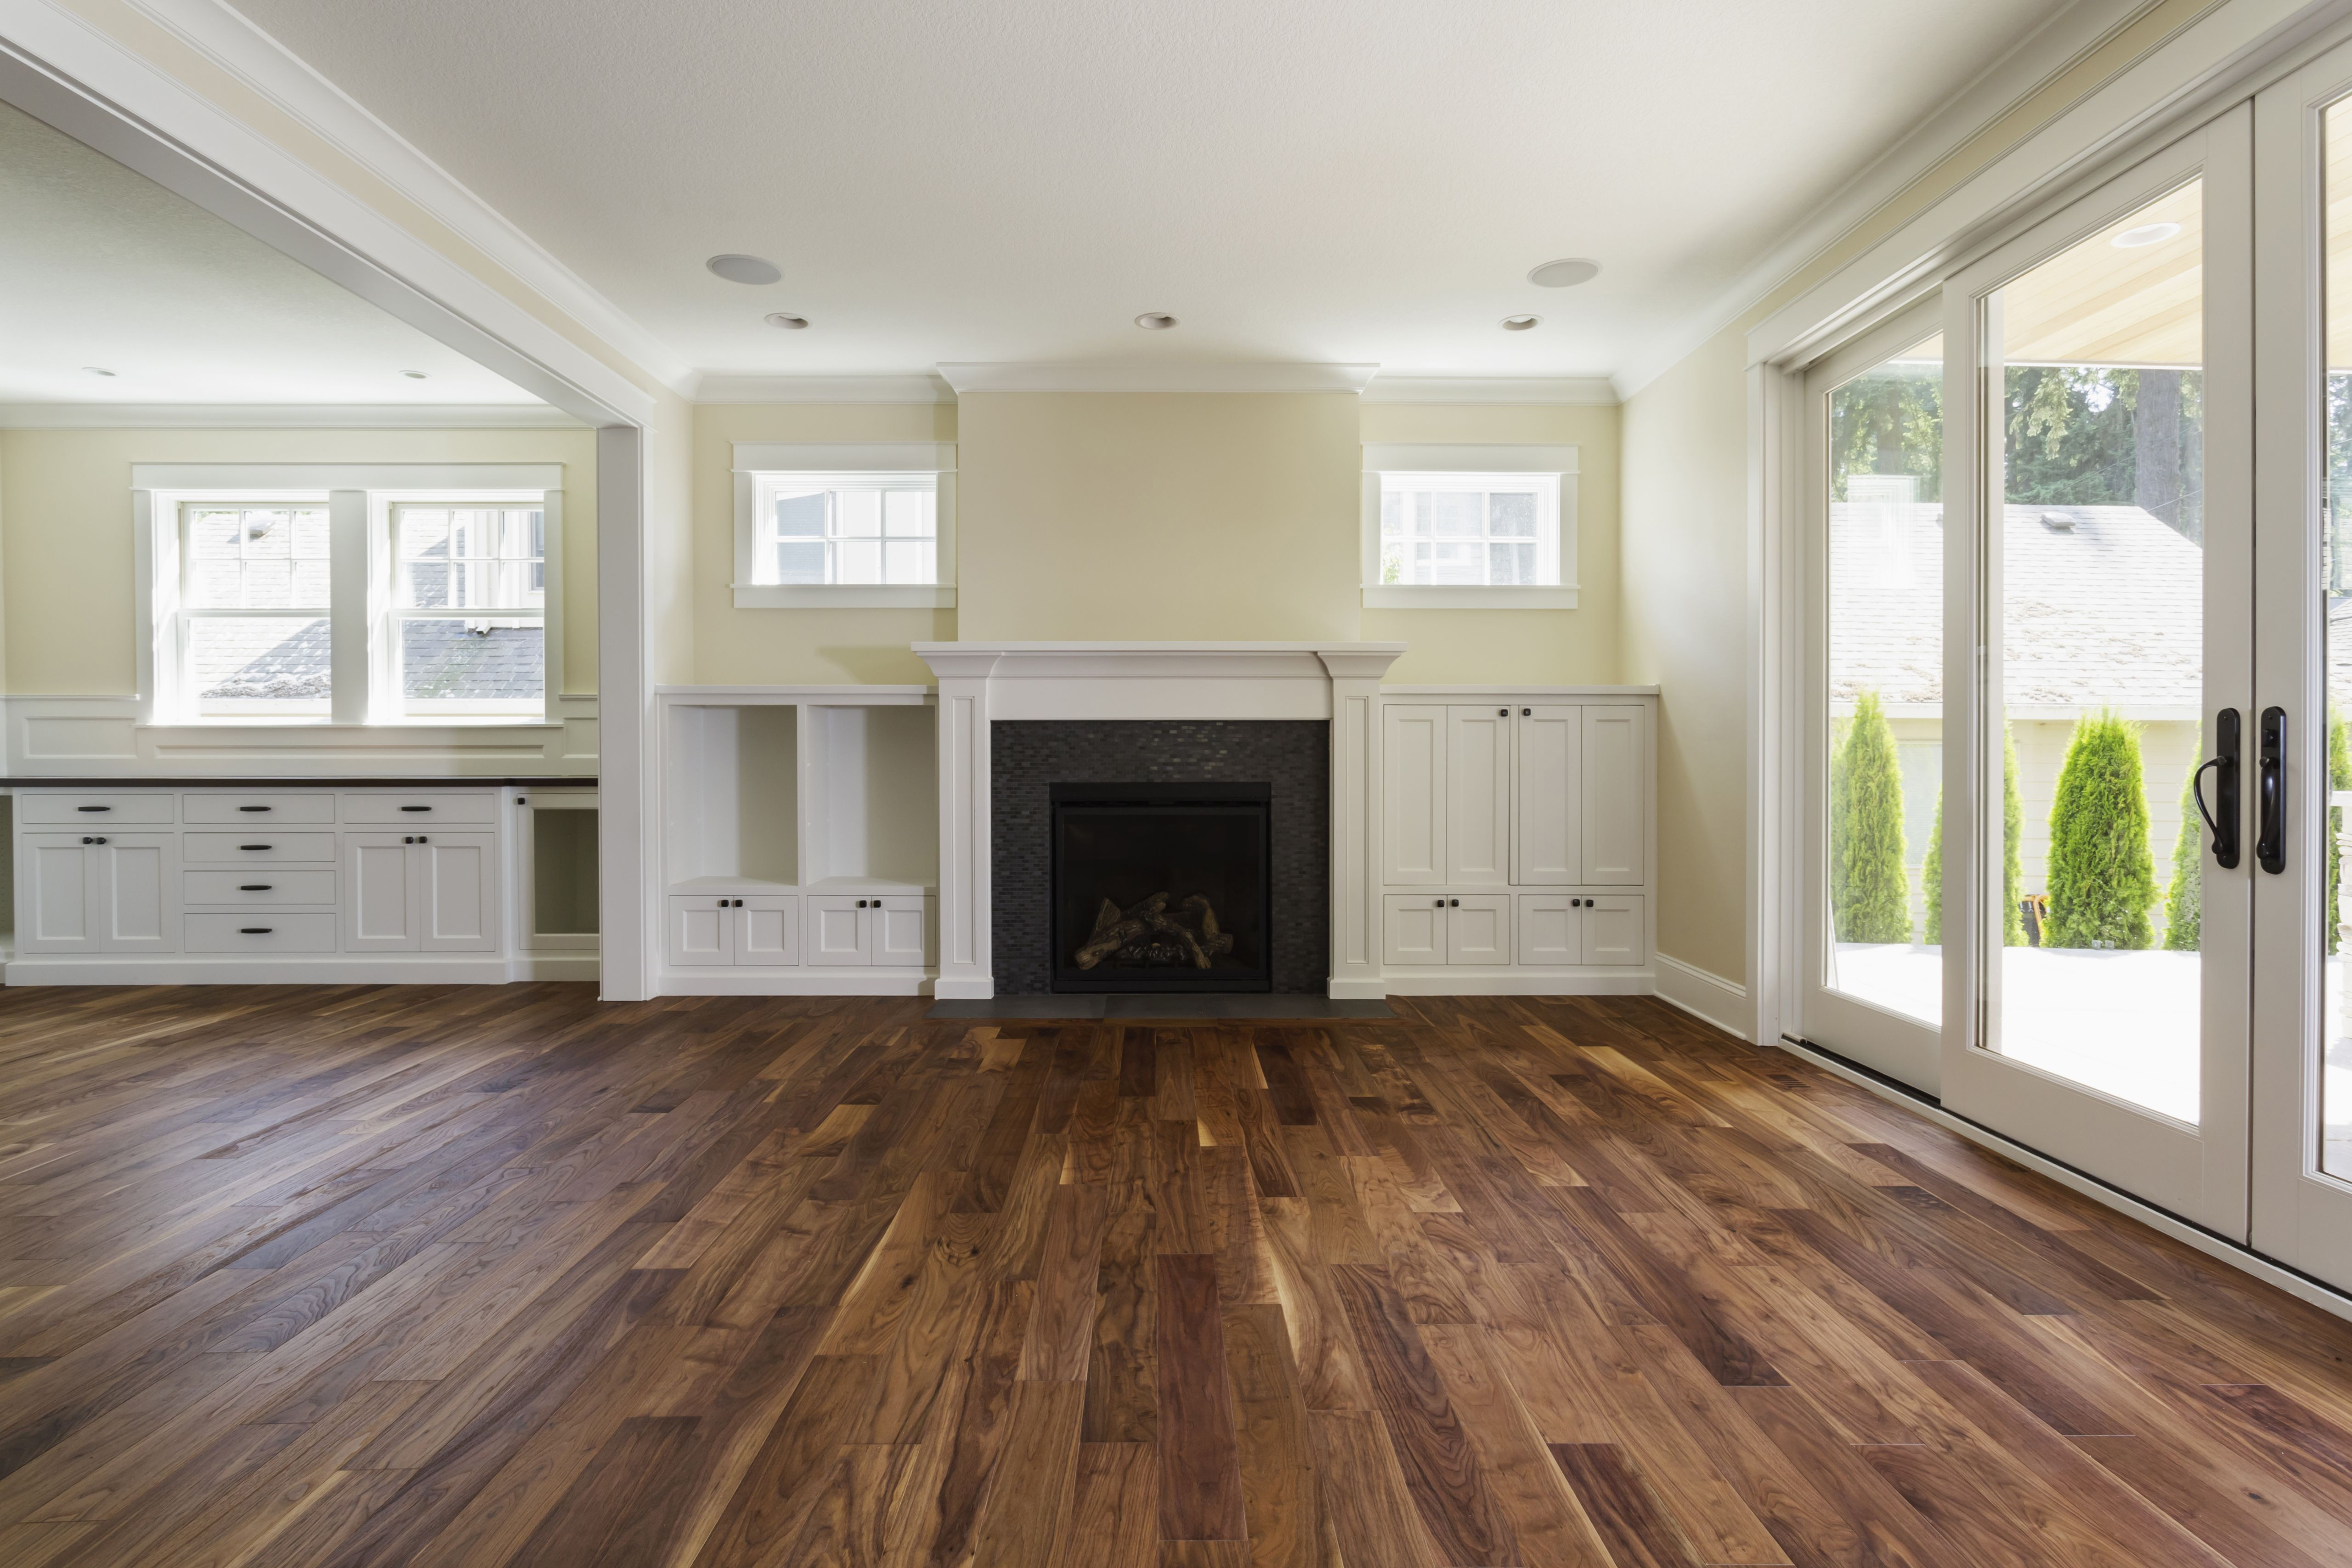 best cleaner for prefinished hardwood floors of the pros and cons of prefinished hardwood flooring for fireplace and built in shelves in living room 482143011 57bef8e33df78cc16e035397